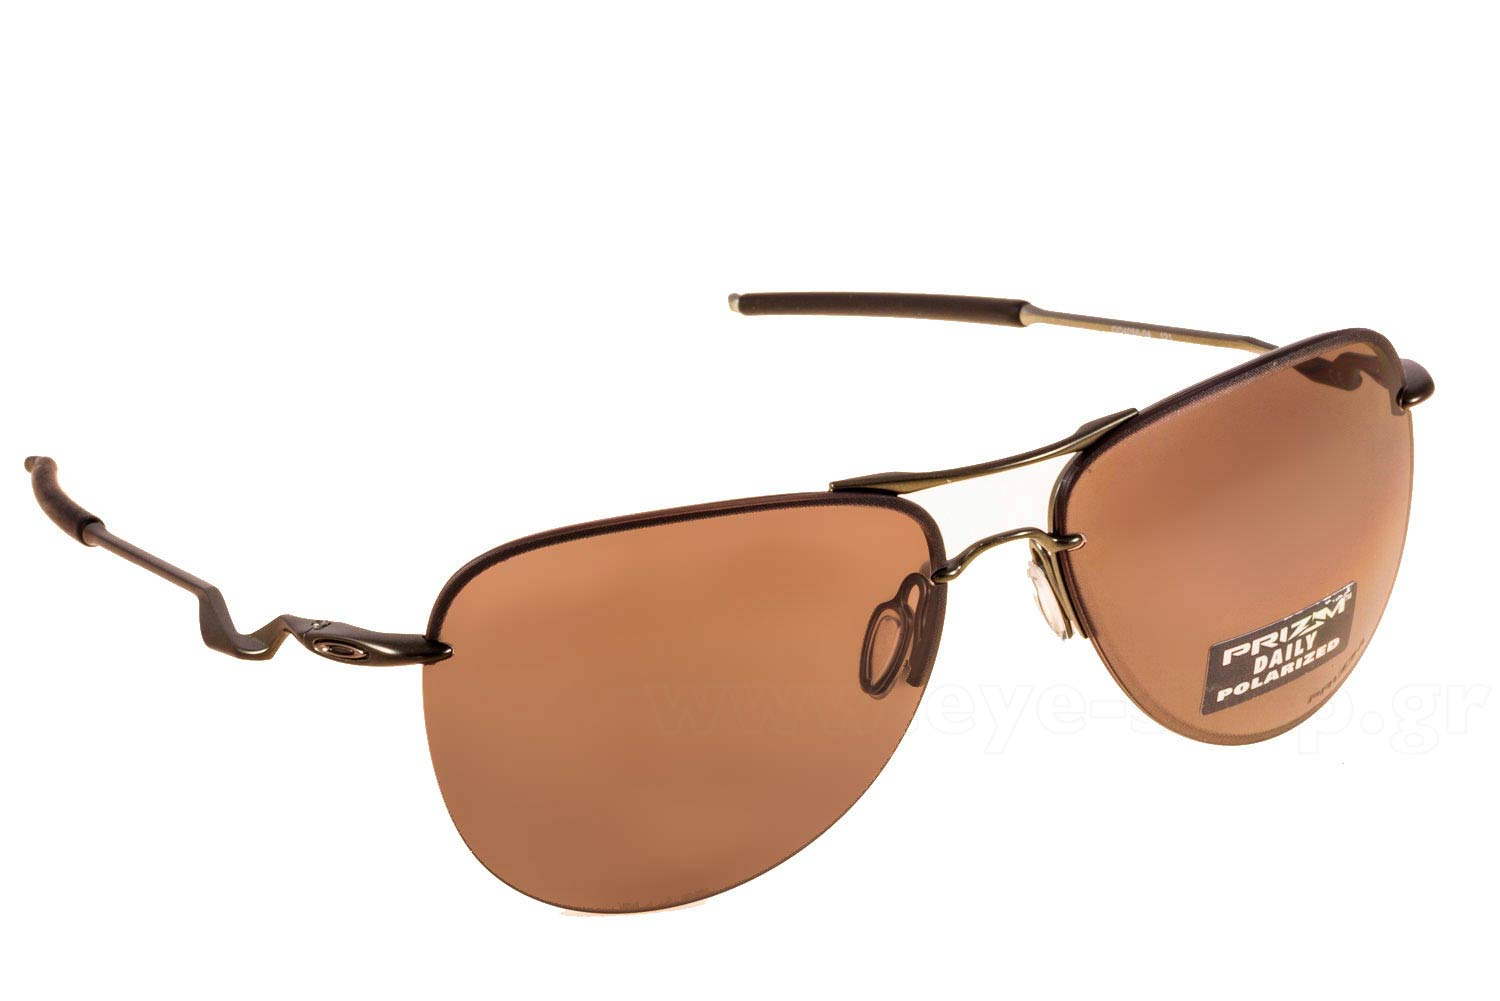 339bdbe83a Enlarge Colors Discontinued. Sunglasses Oakley Tailpin 4086 04 Carbon ...